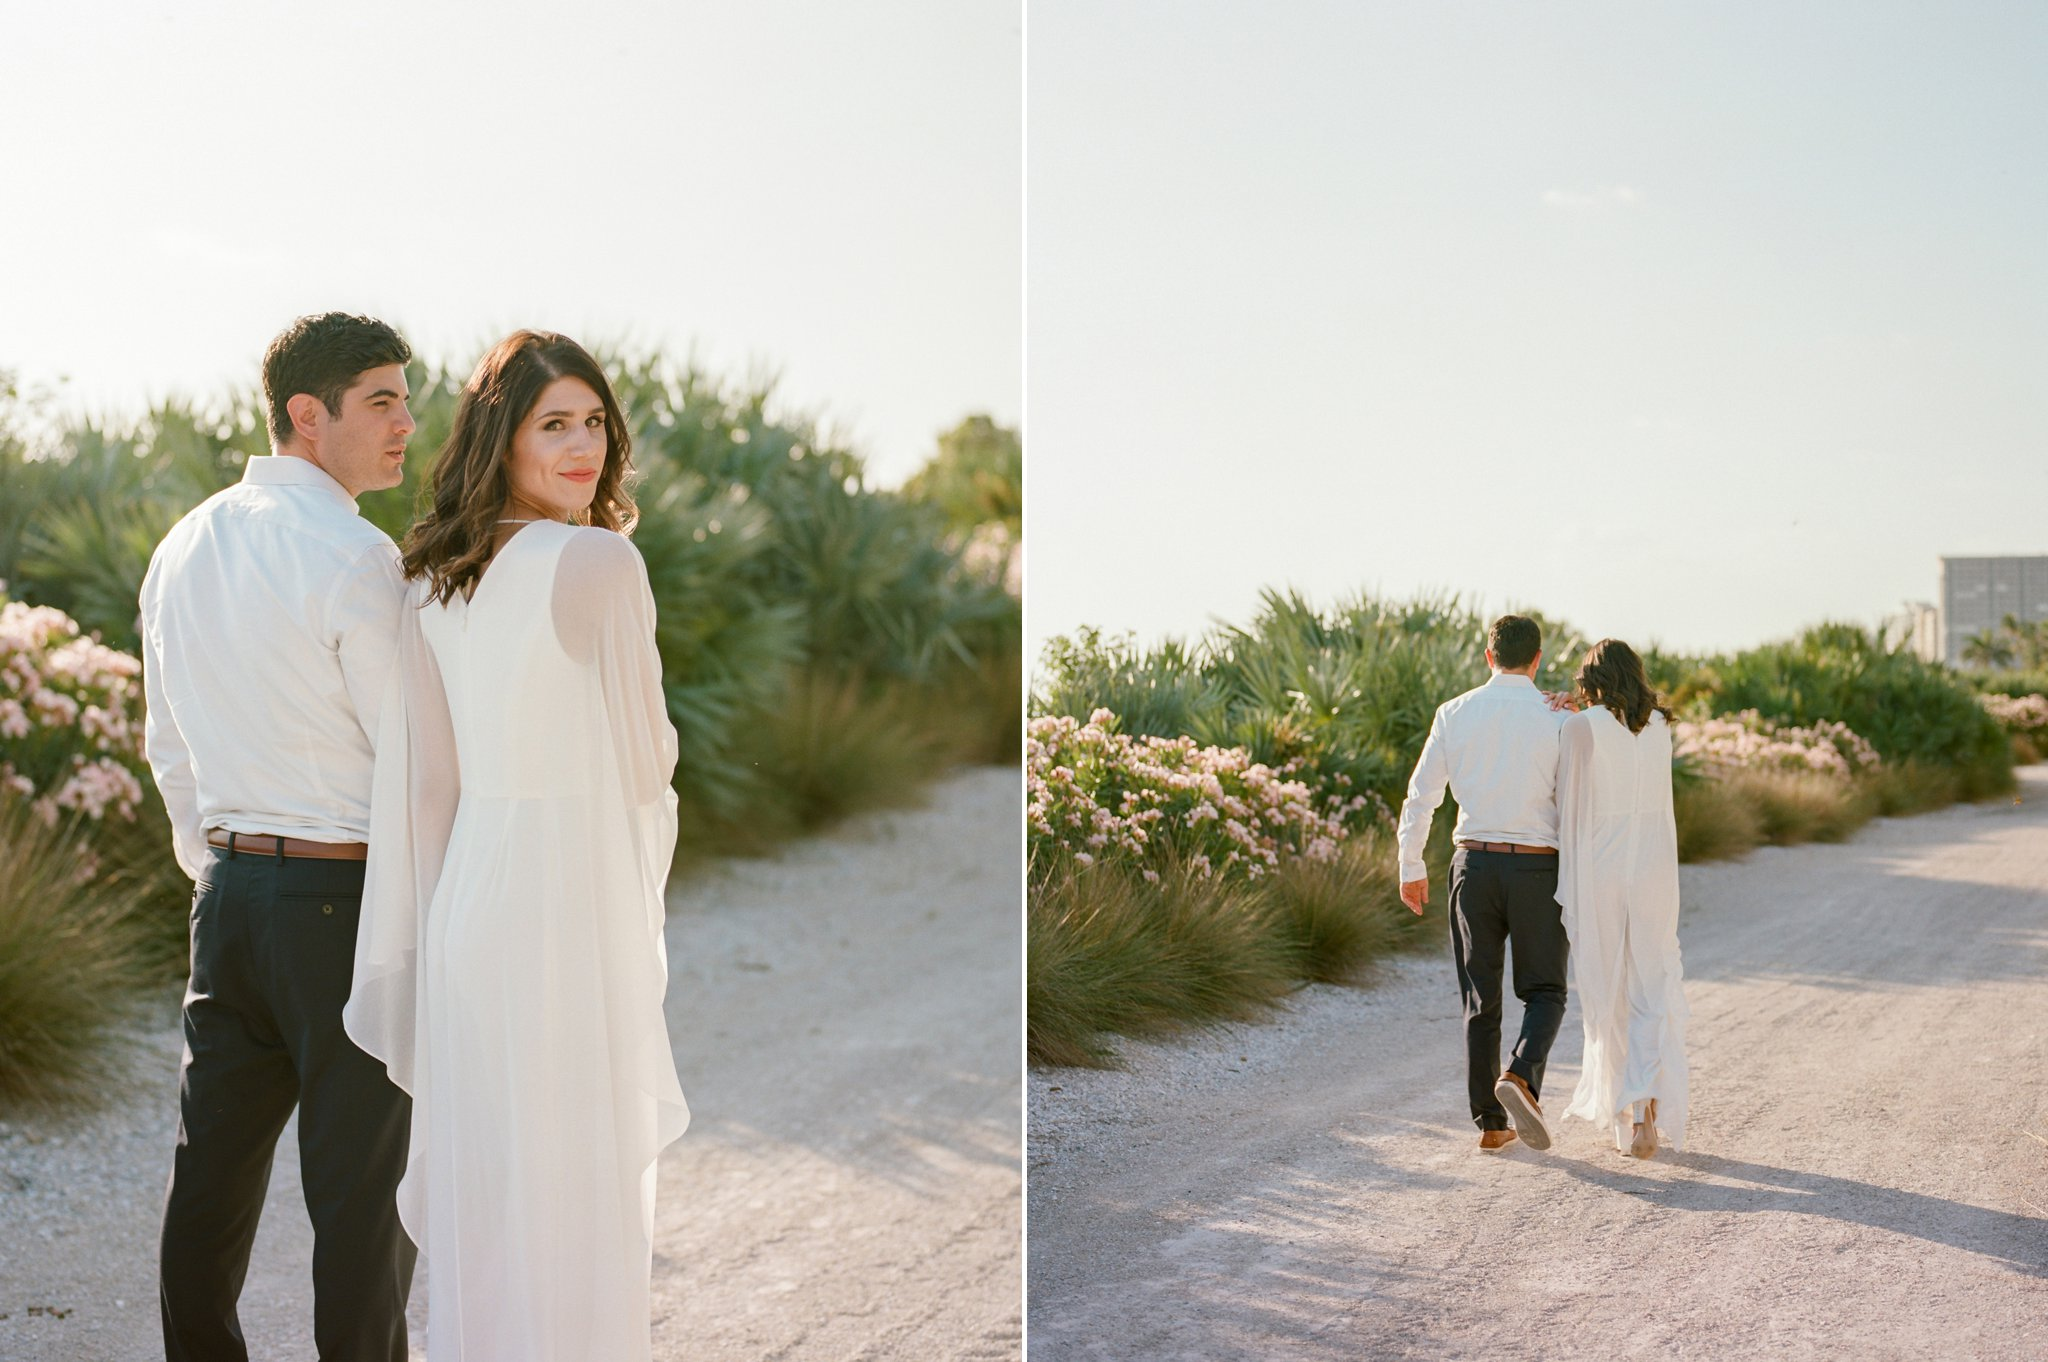 jw marriott marco island engagement session marco island wedding photographer shannon griffin photography_0019.jpg